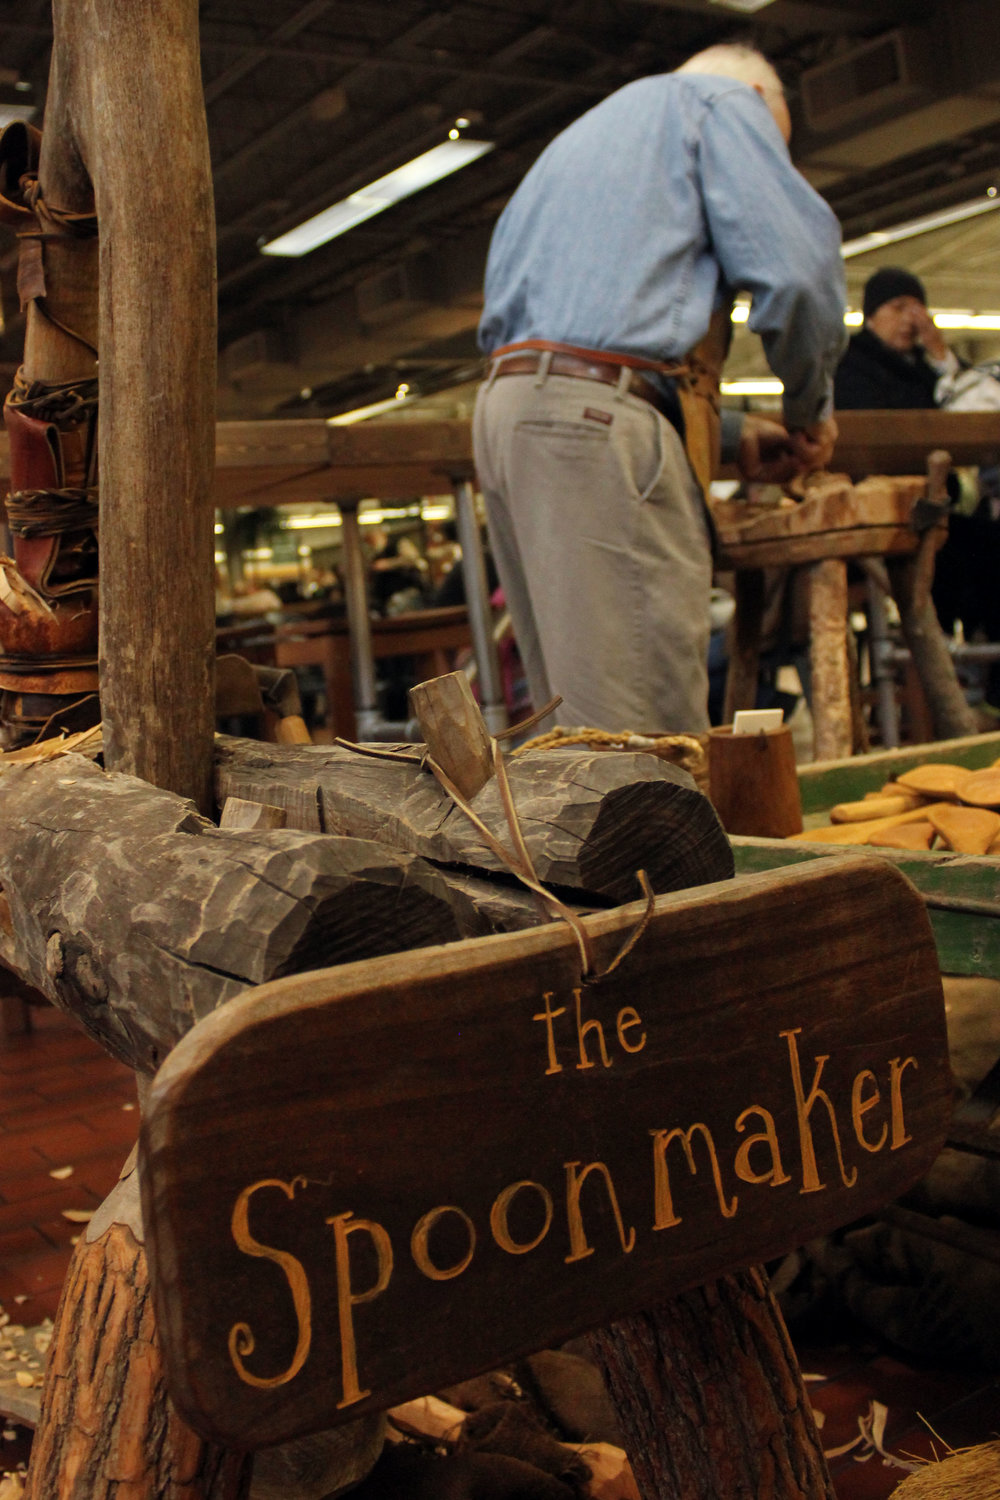 The Spoonmaker